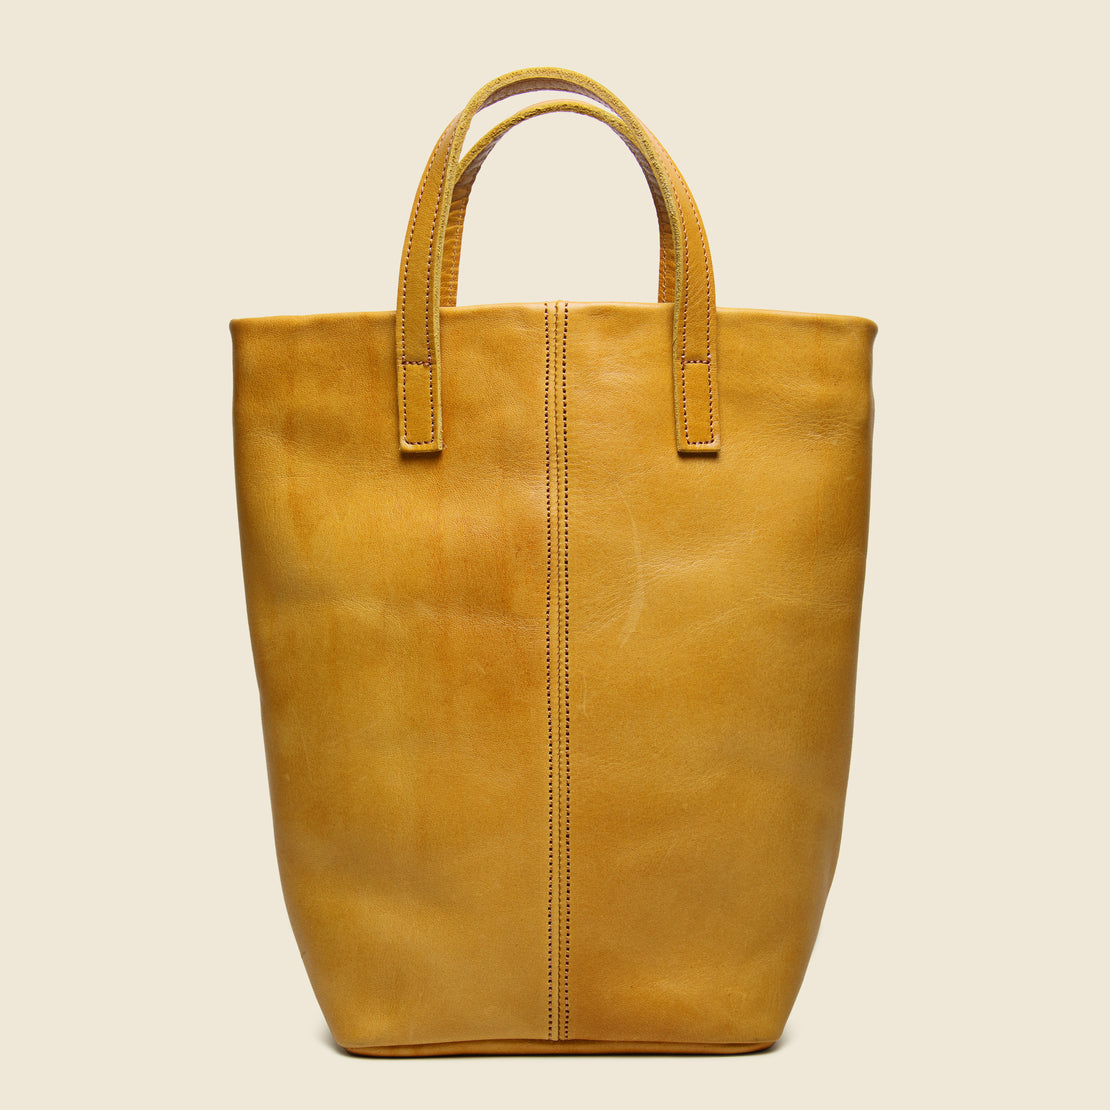 Small Barracas Leather Tote Bag - Caramel